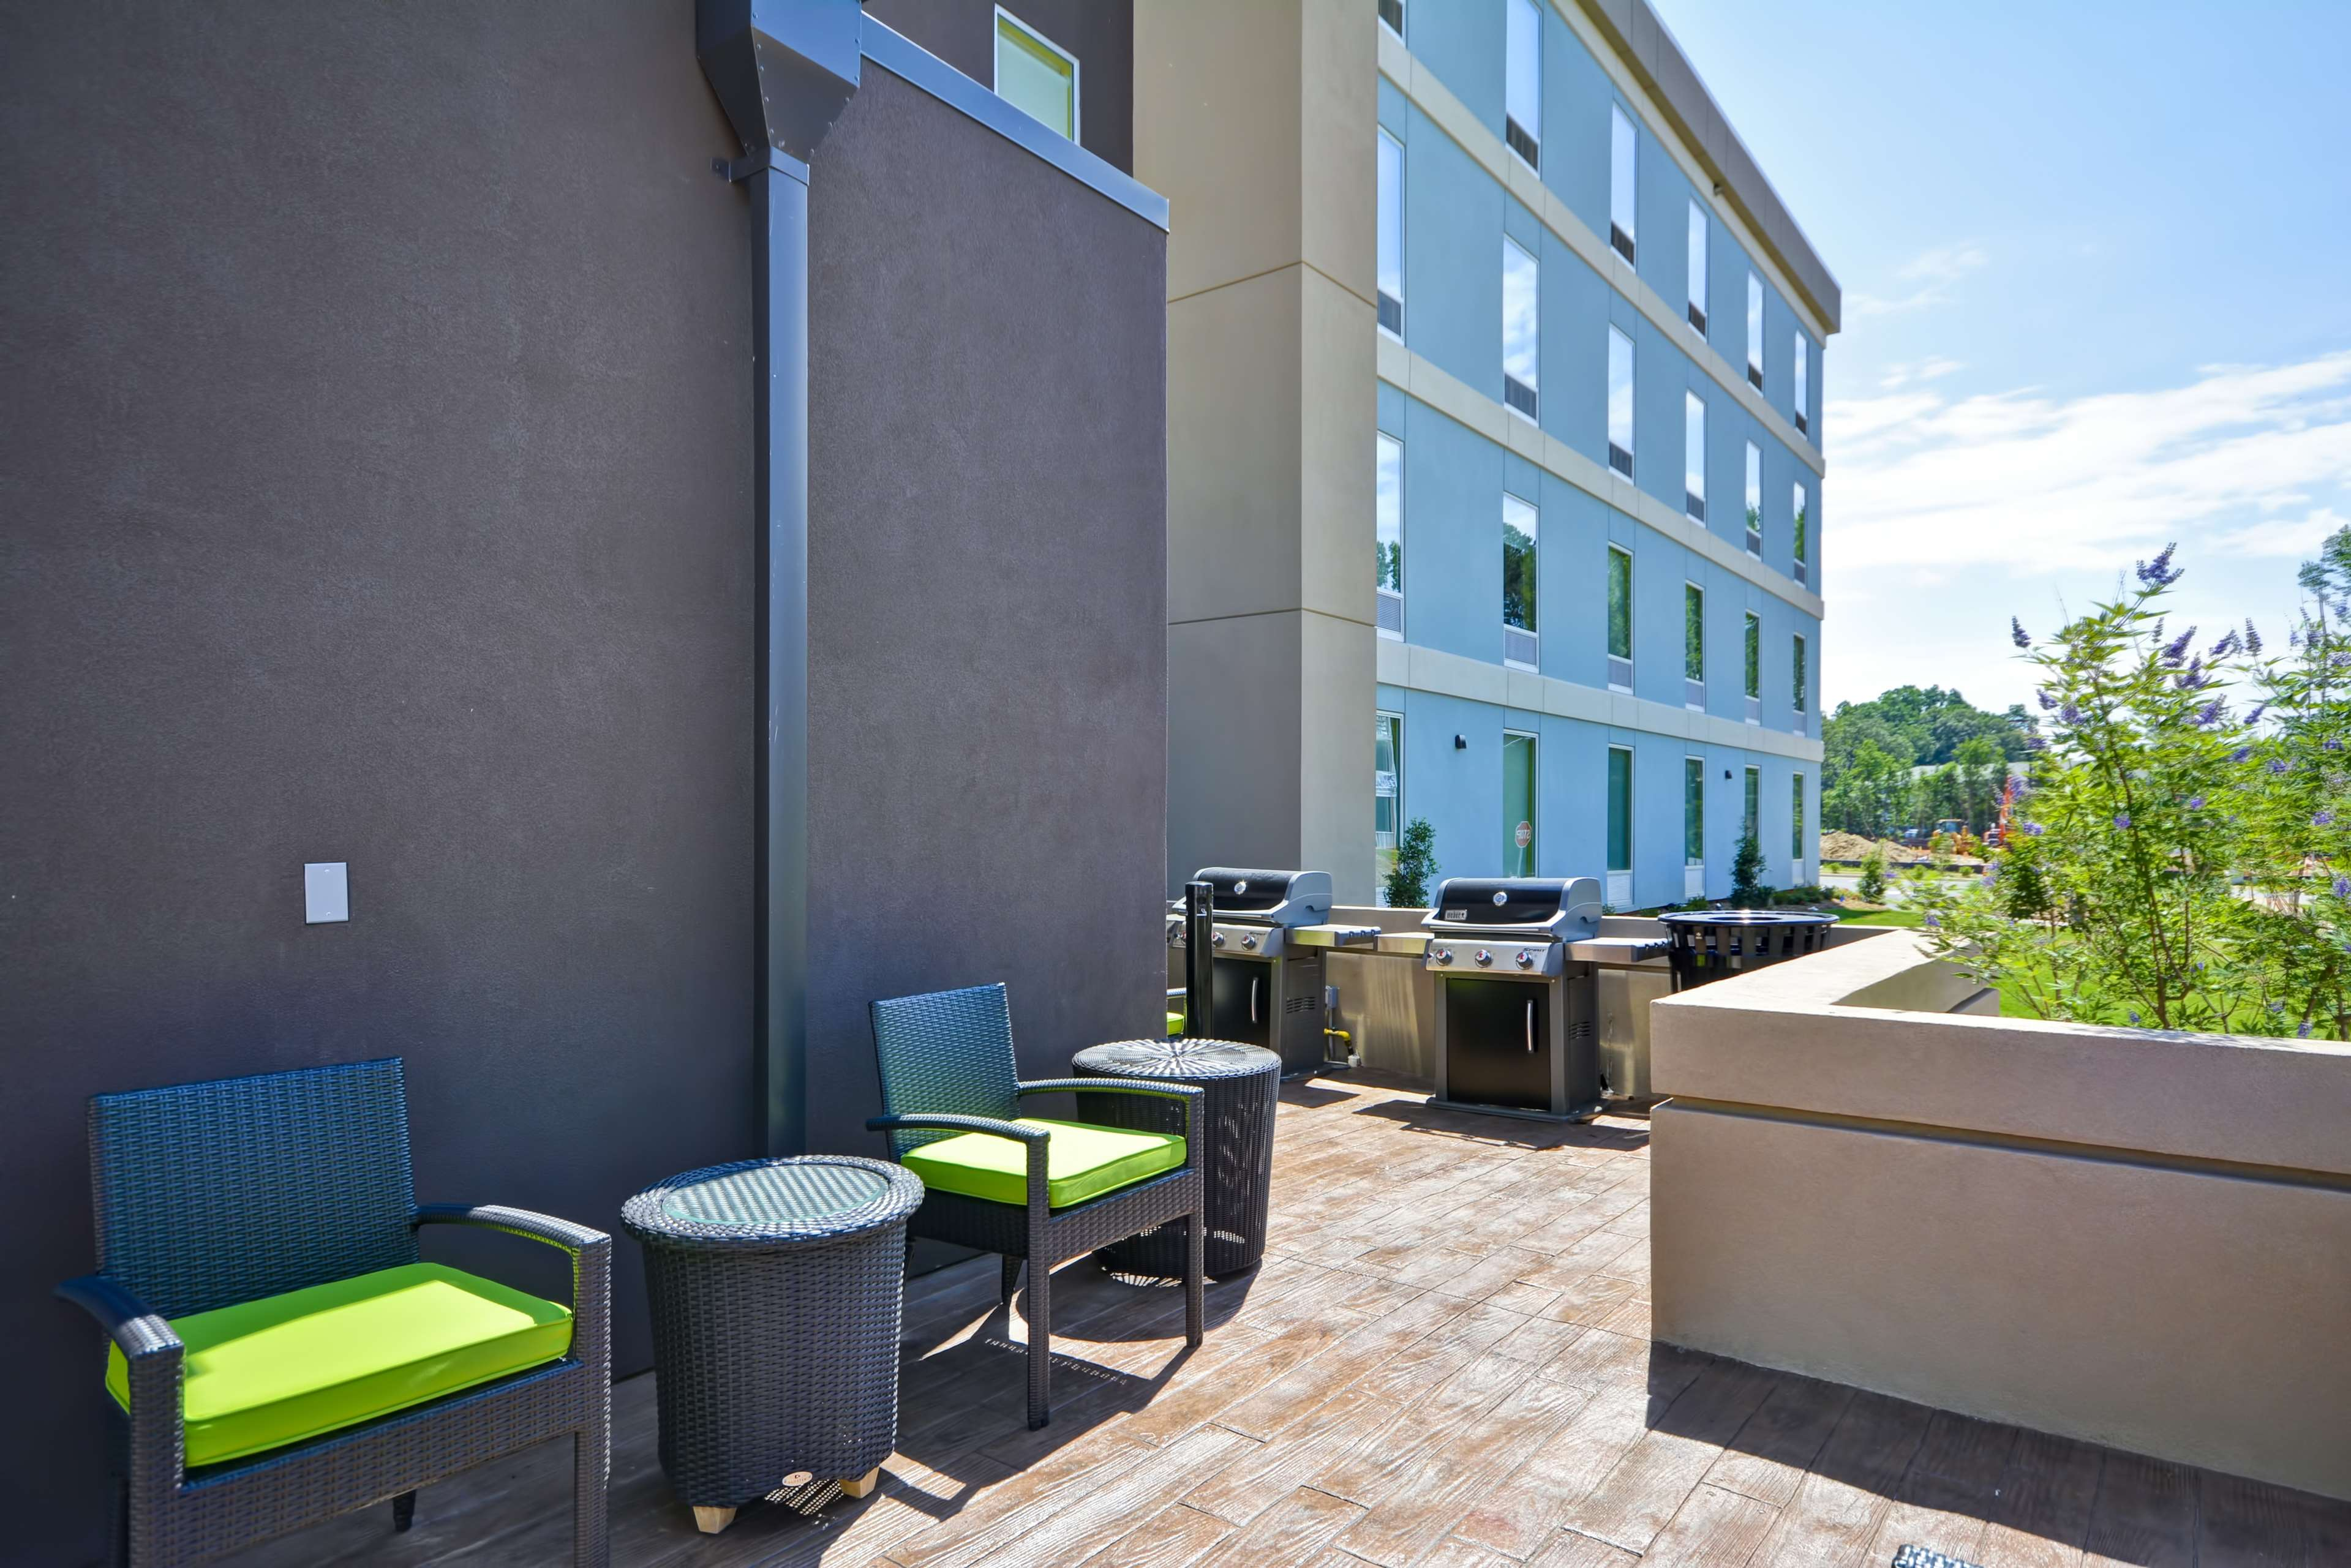 Home2 Suites by Hilton Rock Hill image 4